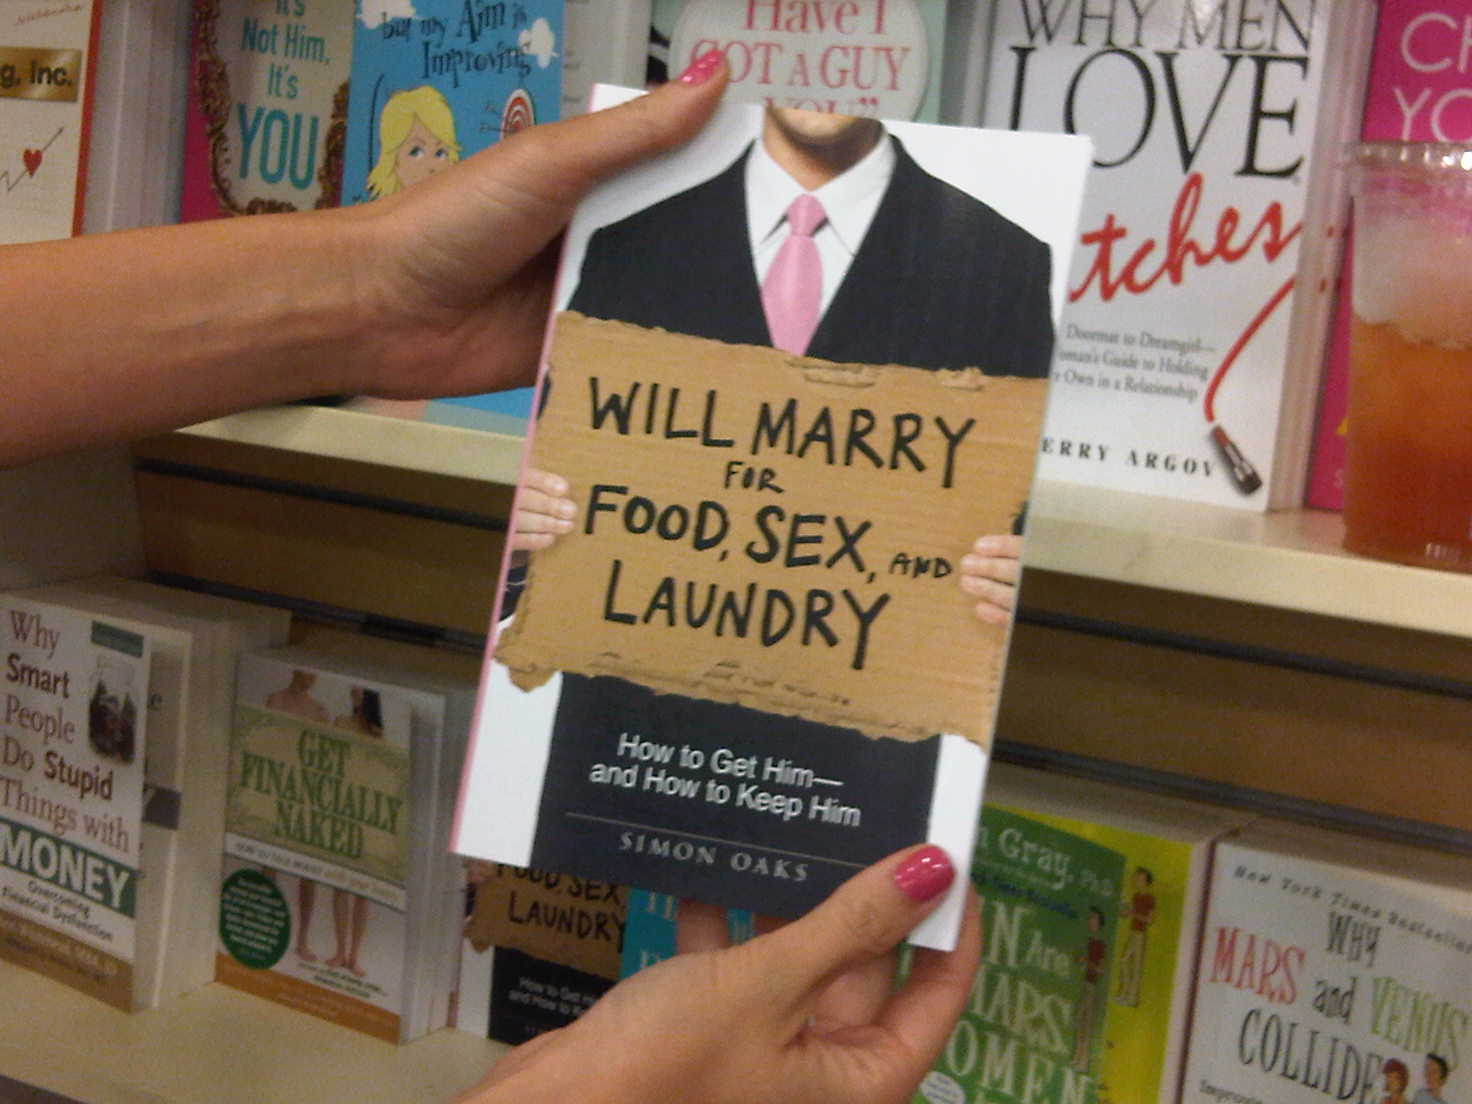 Will marry for food sex and laundry